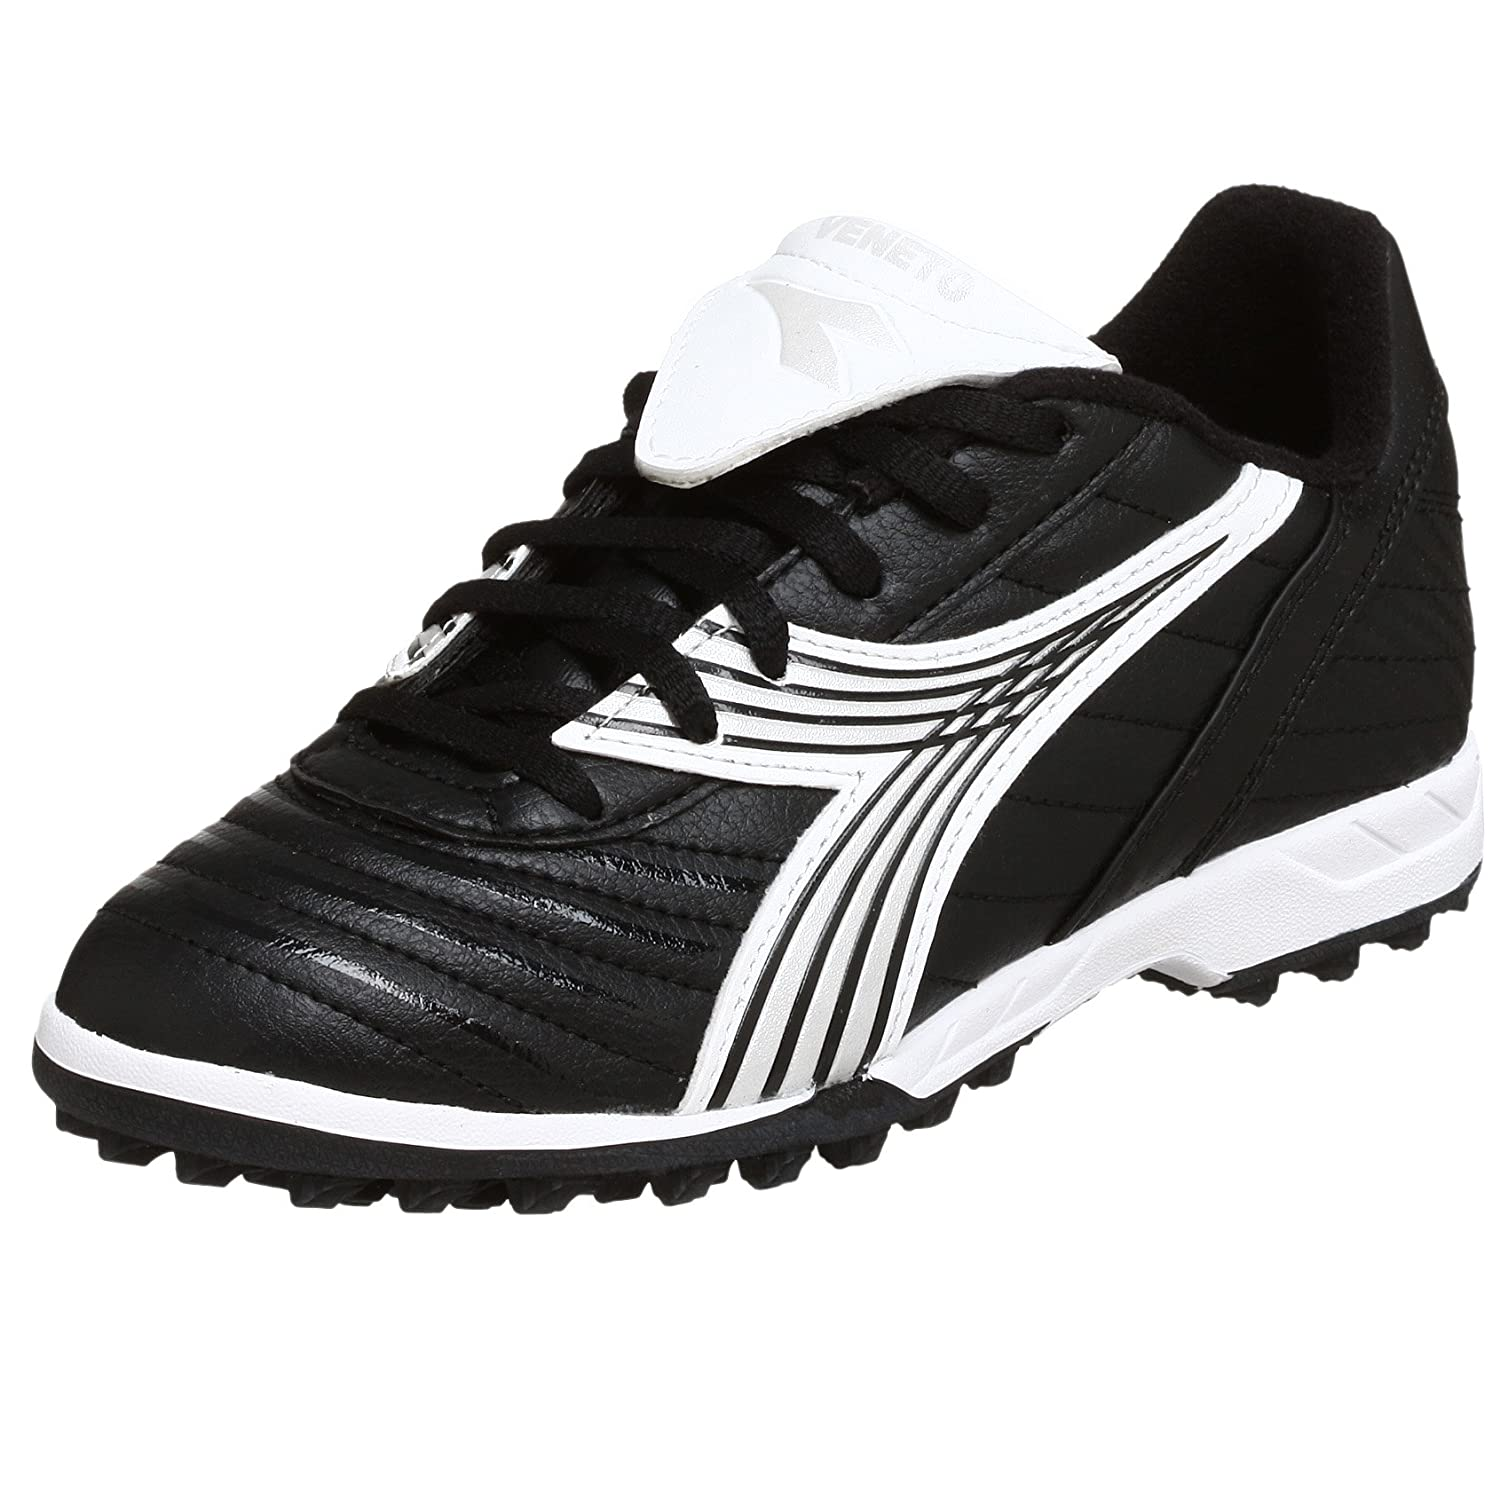 Diadora Little Kid/Big Kid Veneto Turf Jr Soccer Shoe